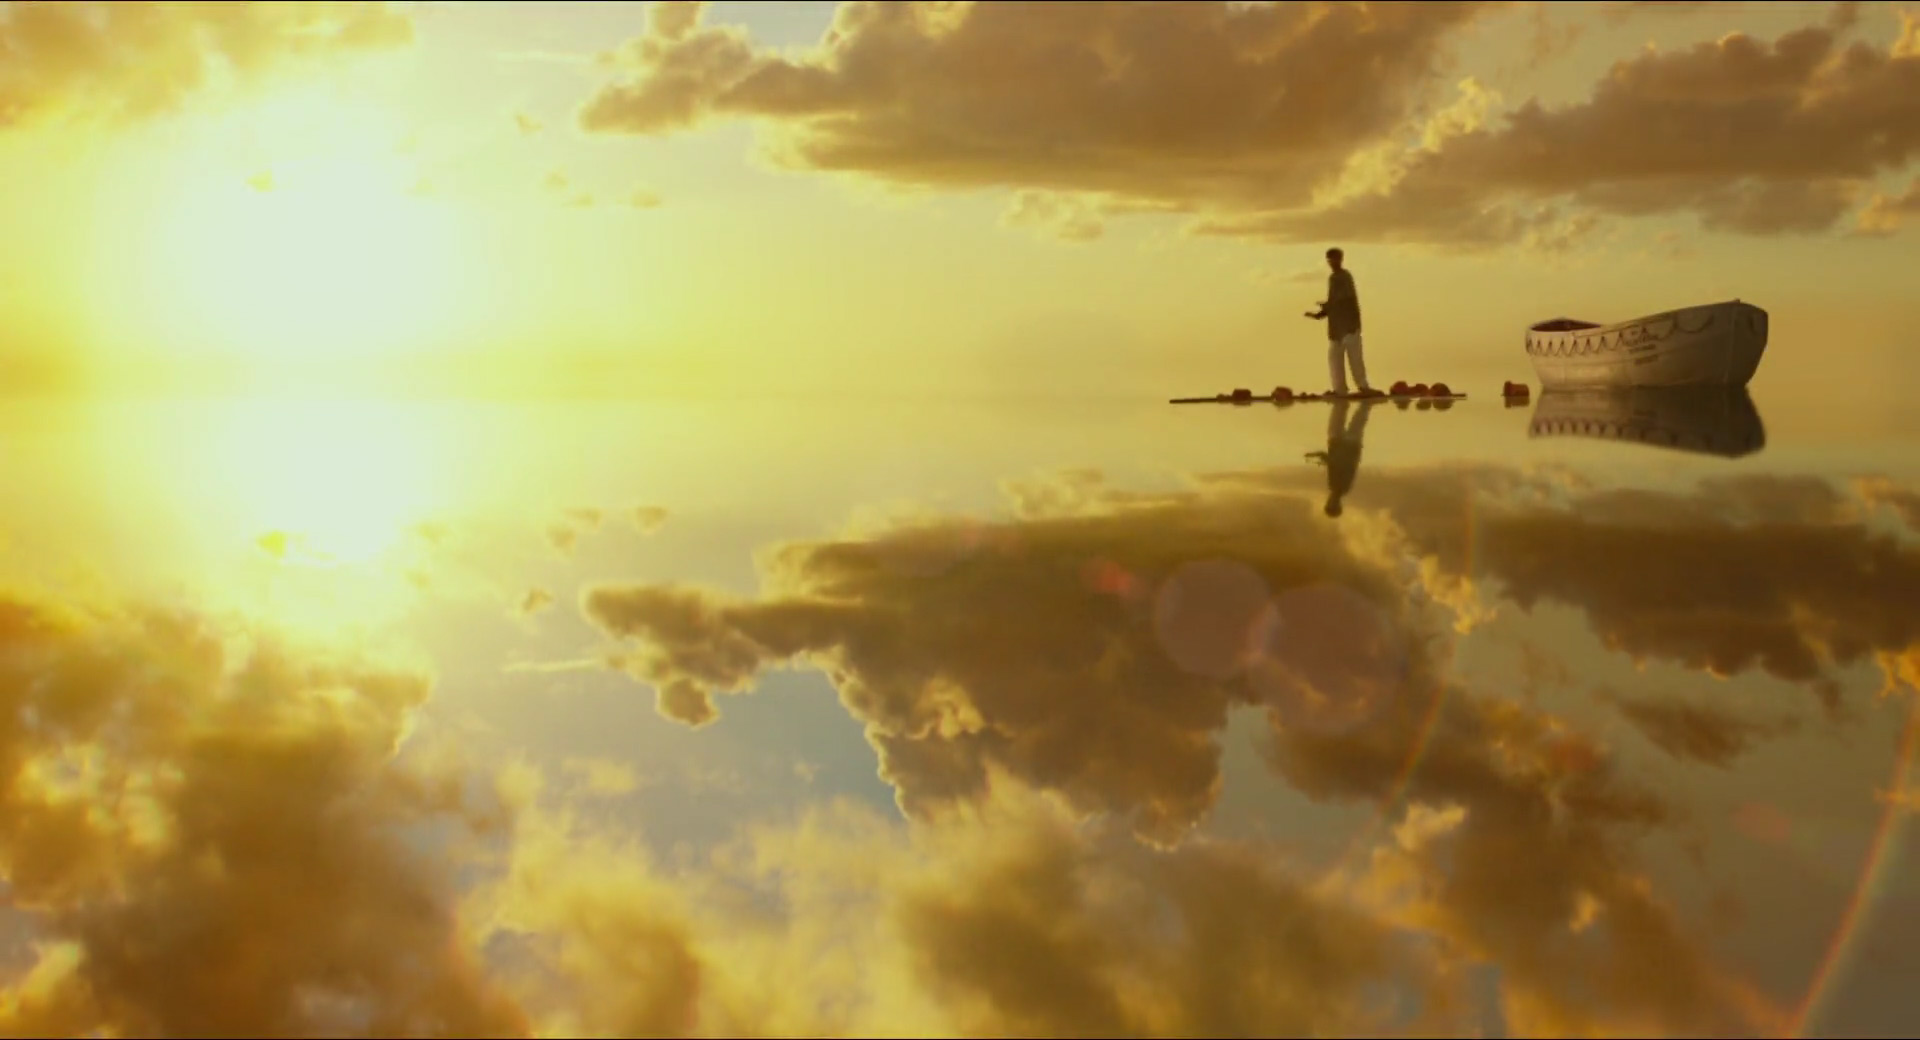 Life of pi 2012 review the little blog for Life of pi character development